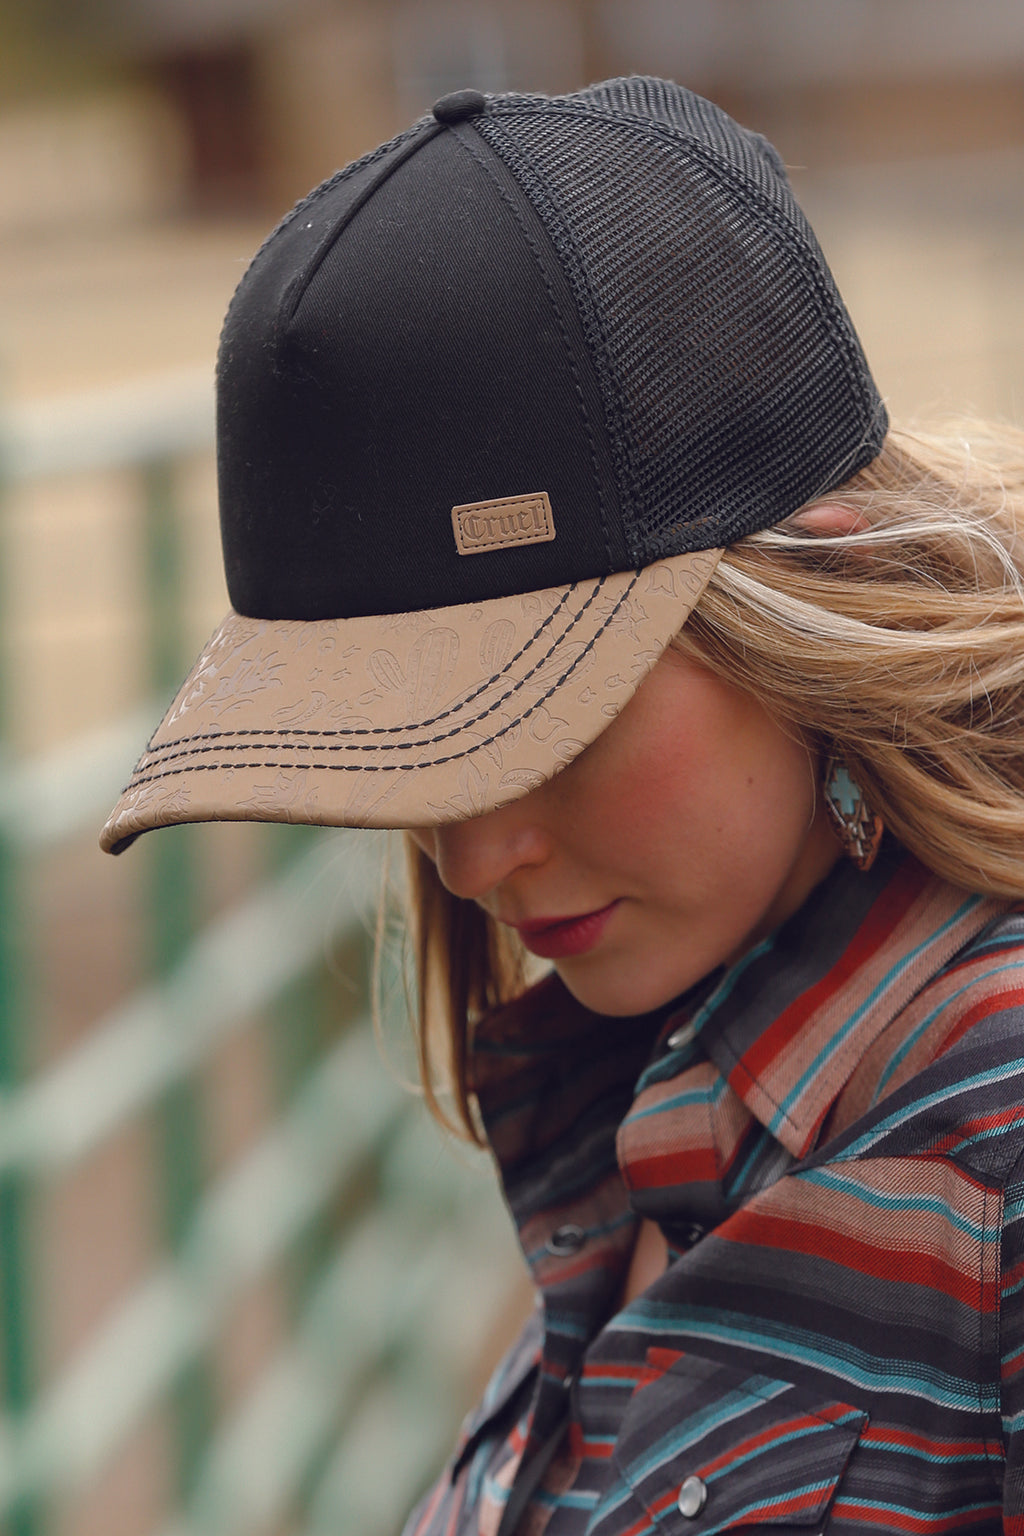 Women's Cruel Girl Black and Tan Trucker Cap